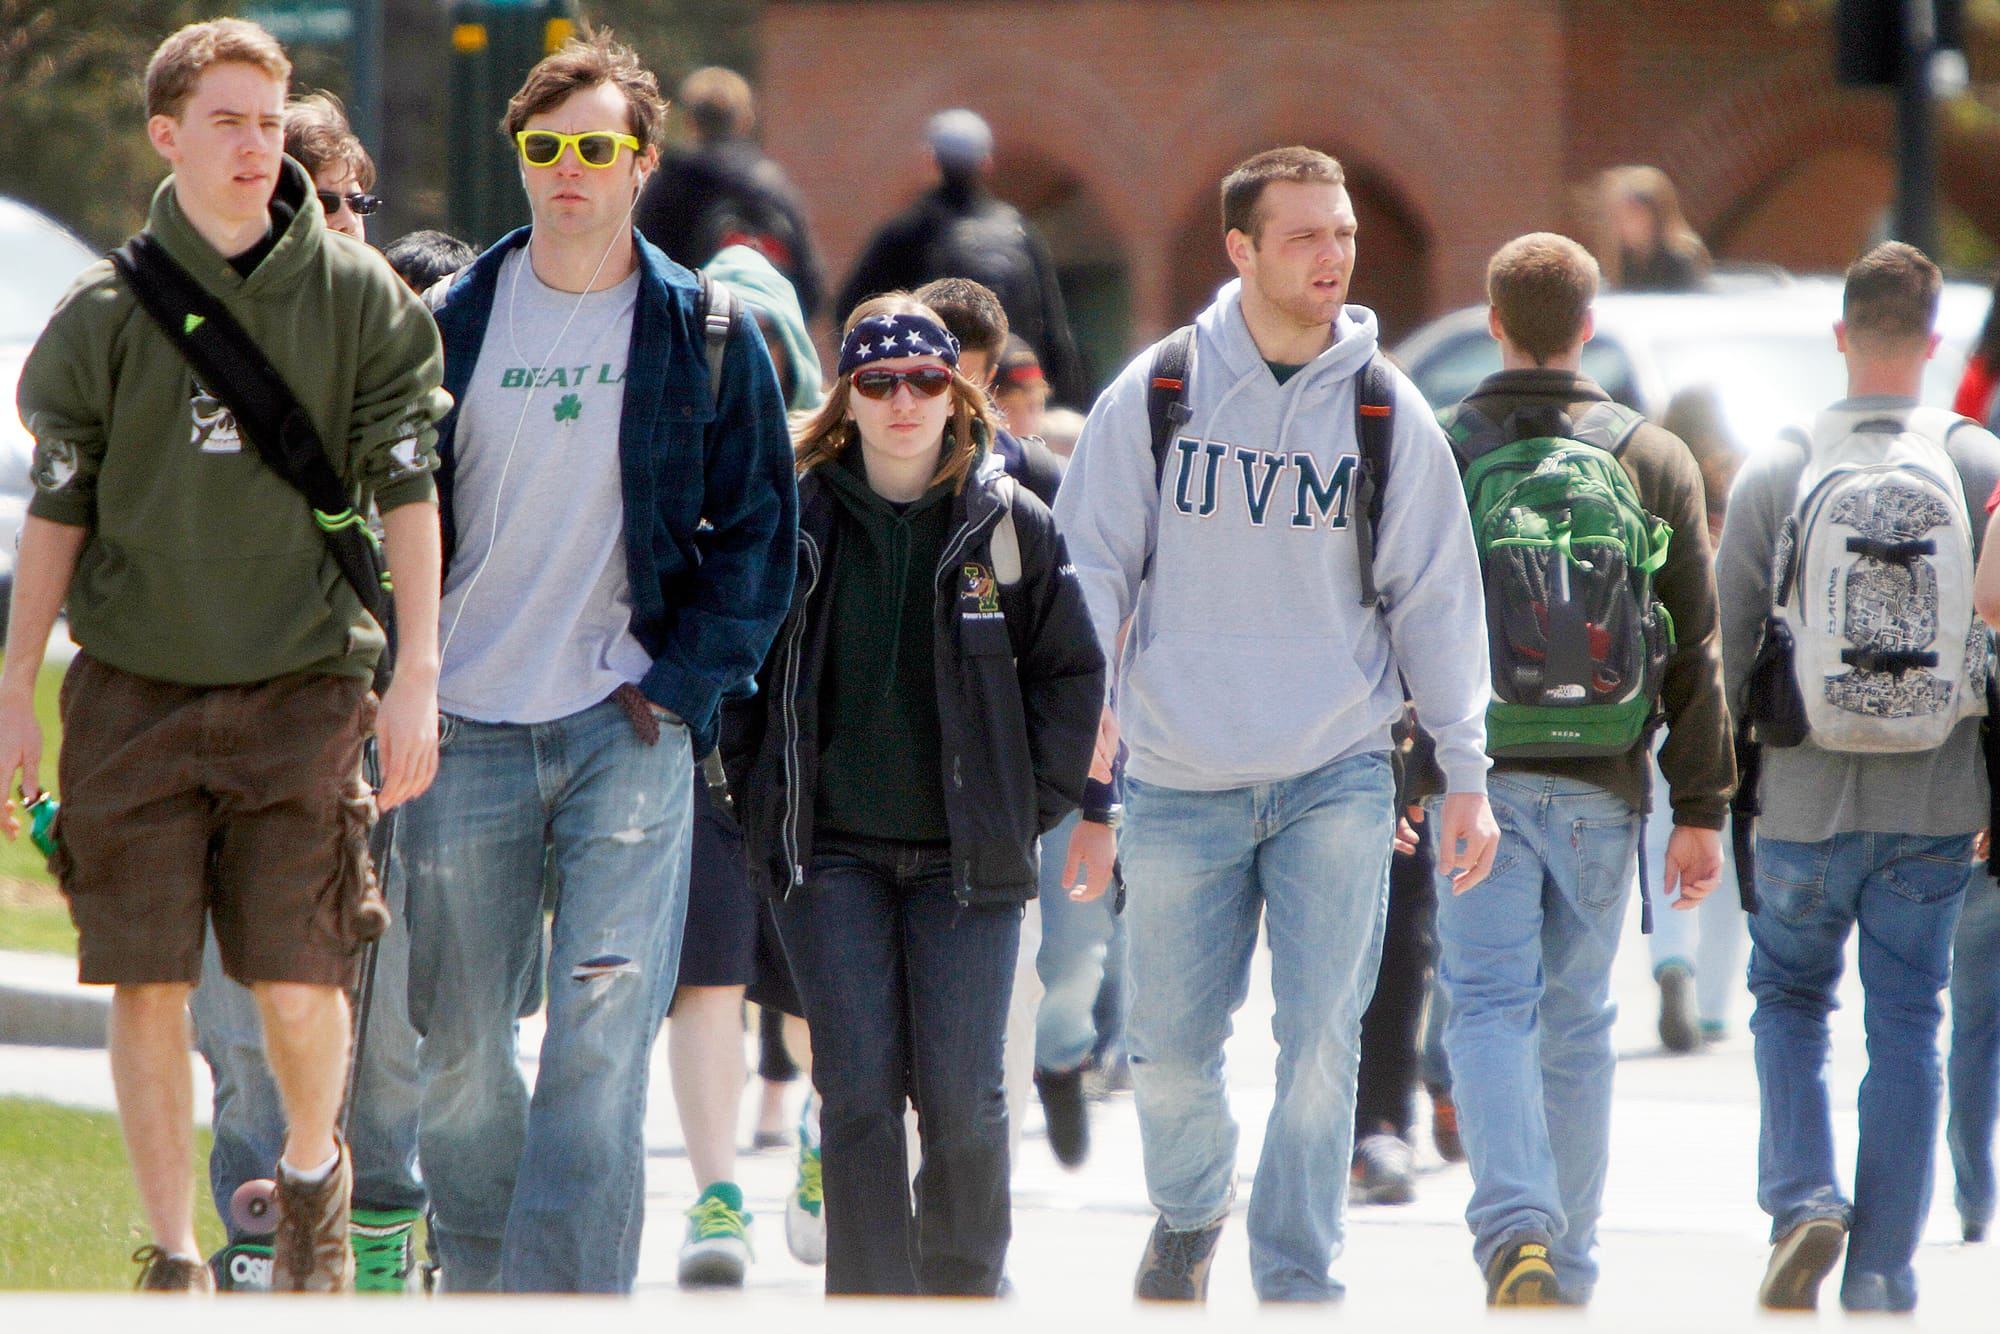 Students walk across campus at the University of Vermont in Burlington.